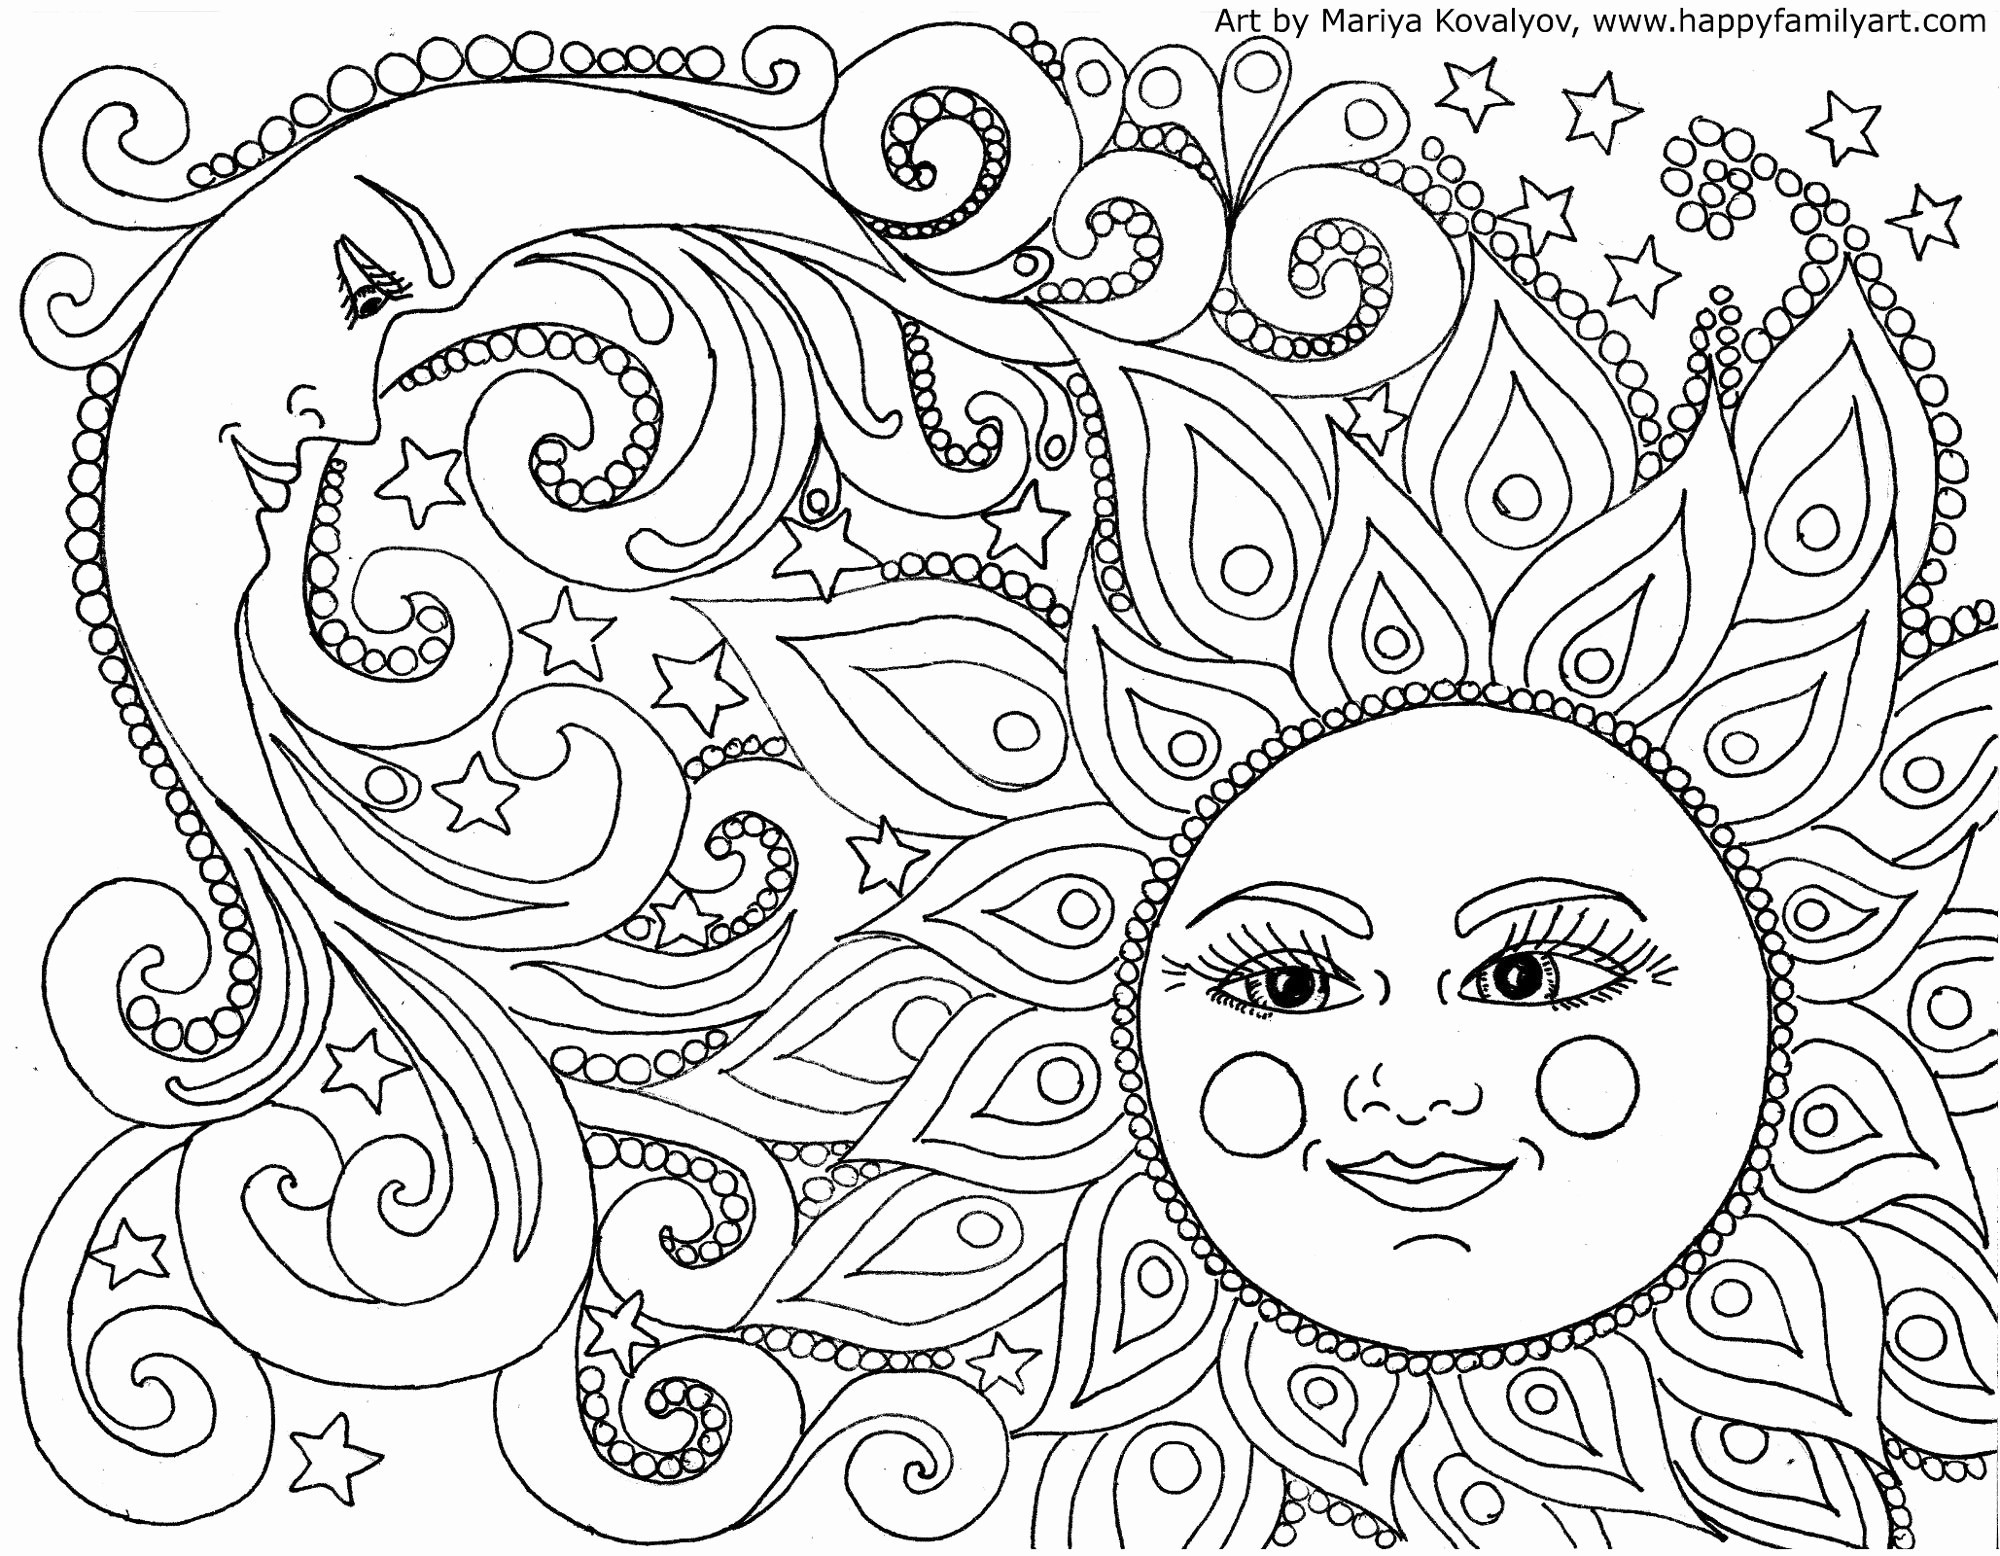 Coloring Pages : Free Printable Coloring Pages With Quotes Sun For - Free Printable Coloring Books For Adults